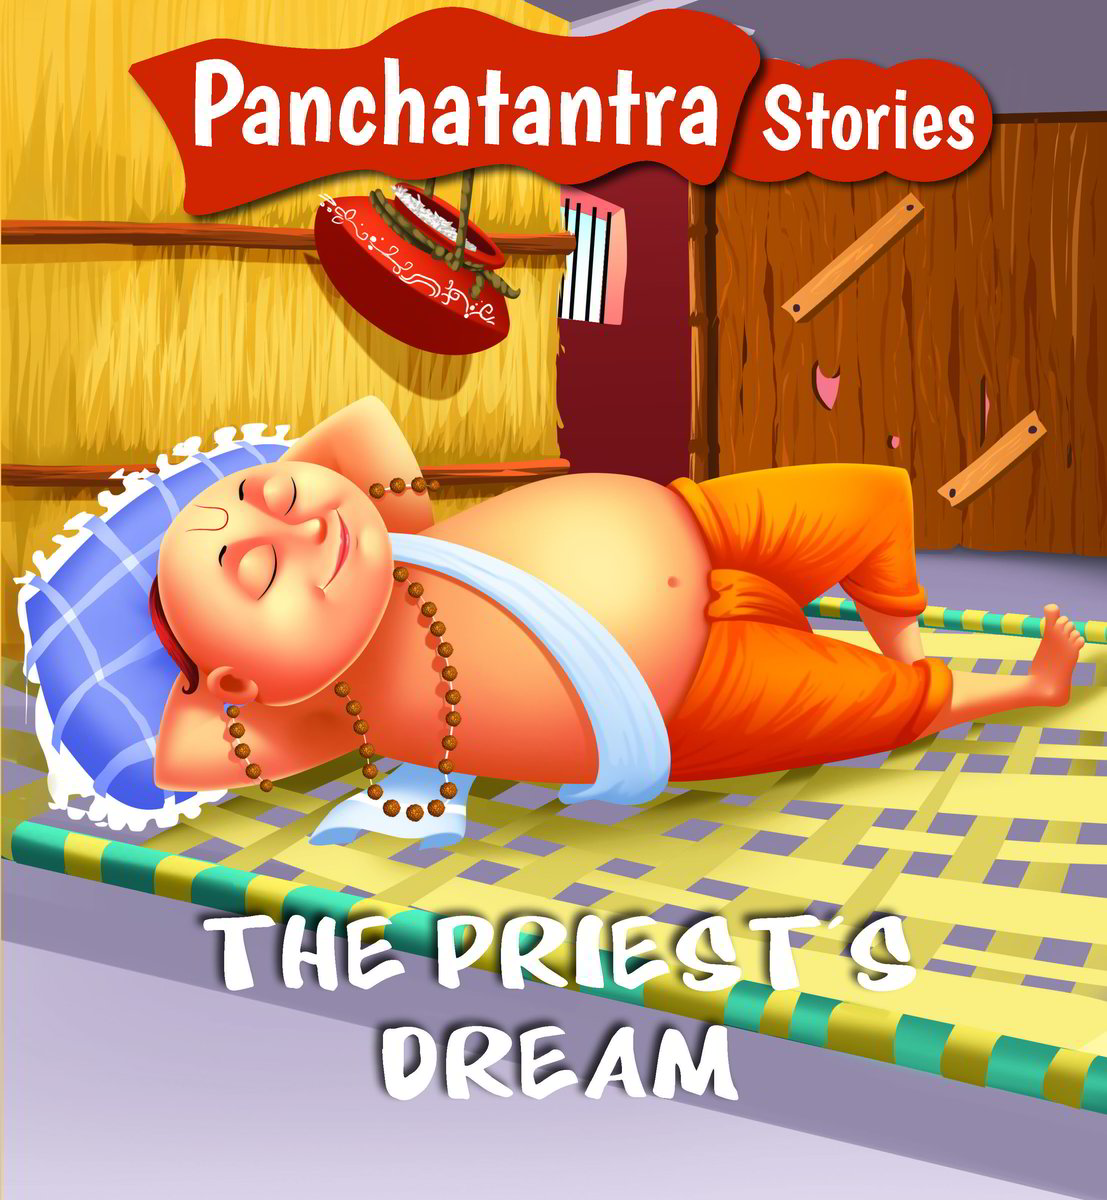 The Priest's Dream: Panchatantra Story